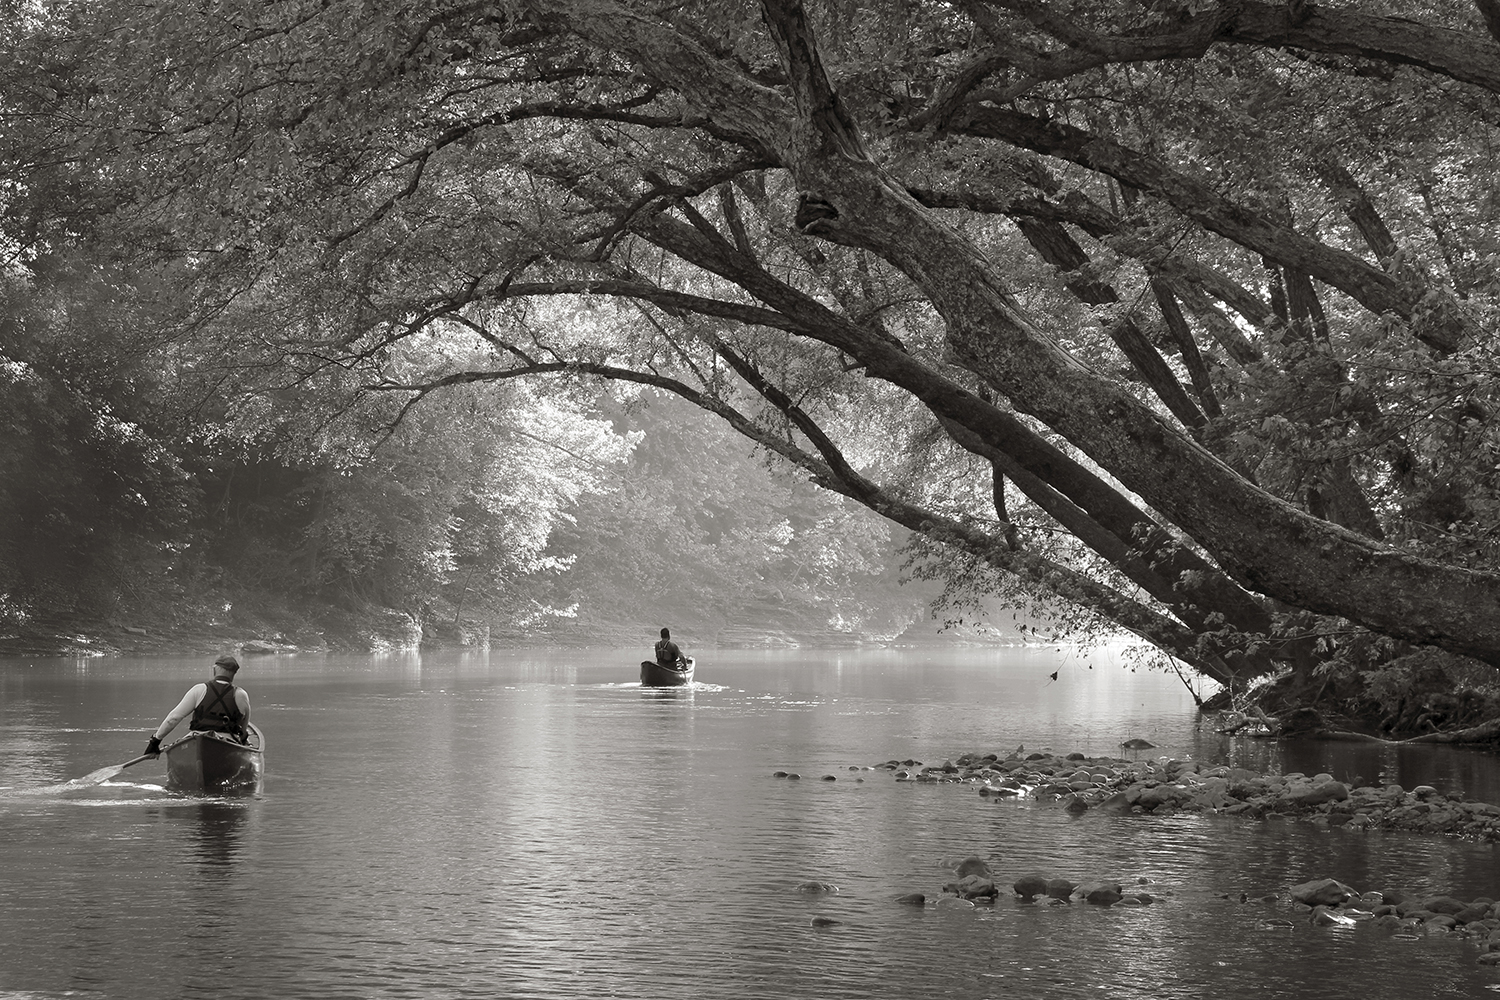 Two canoeists paddle into the late afternoon sunlight on the Mulberry River of Arkansas on 4 June 2011.